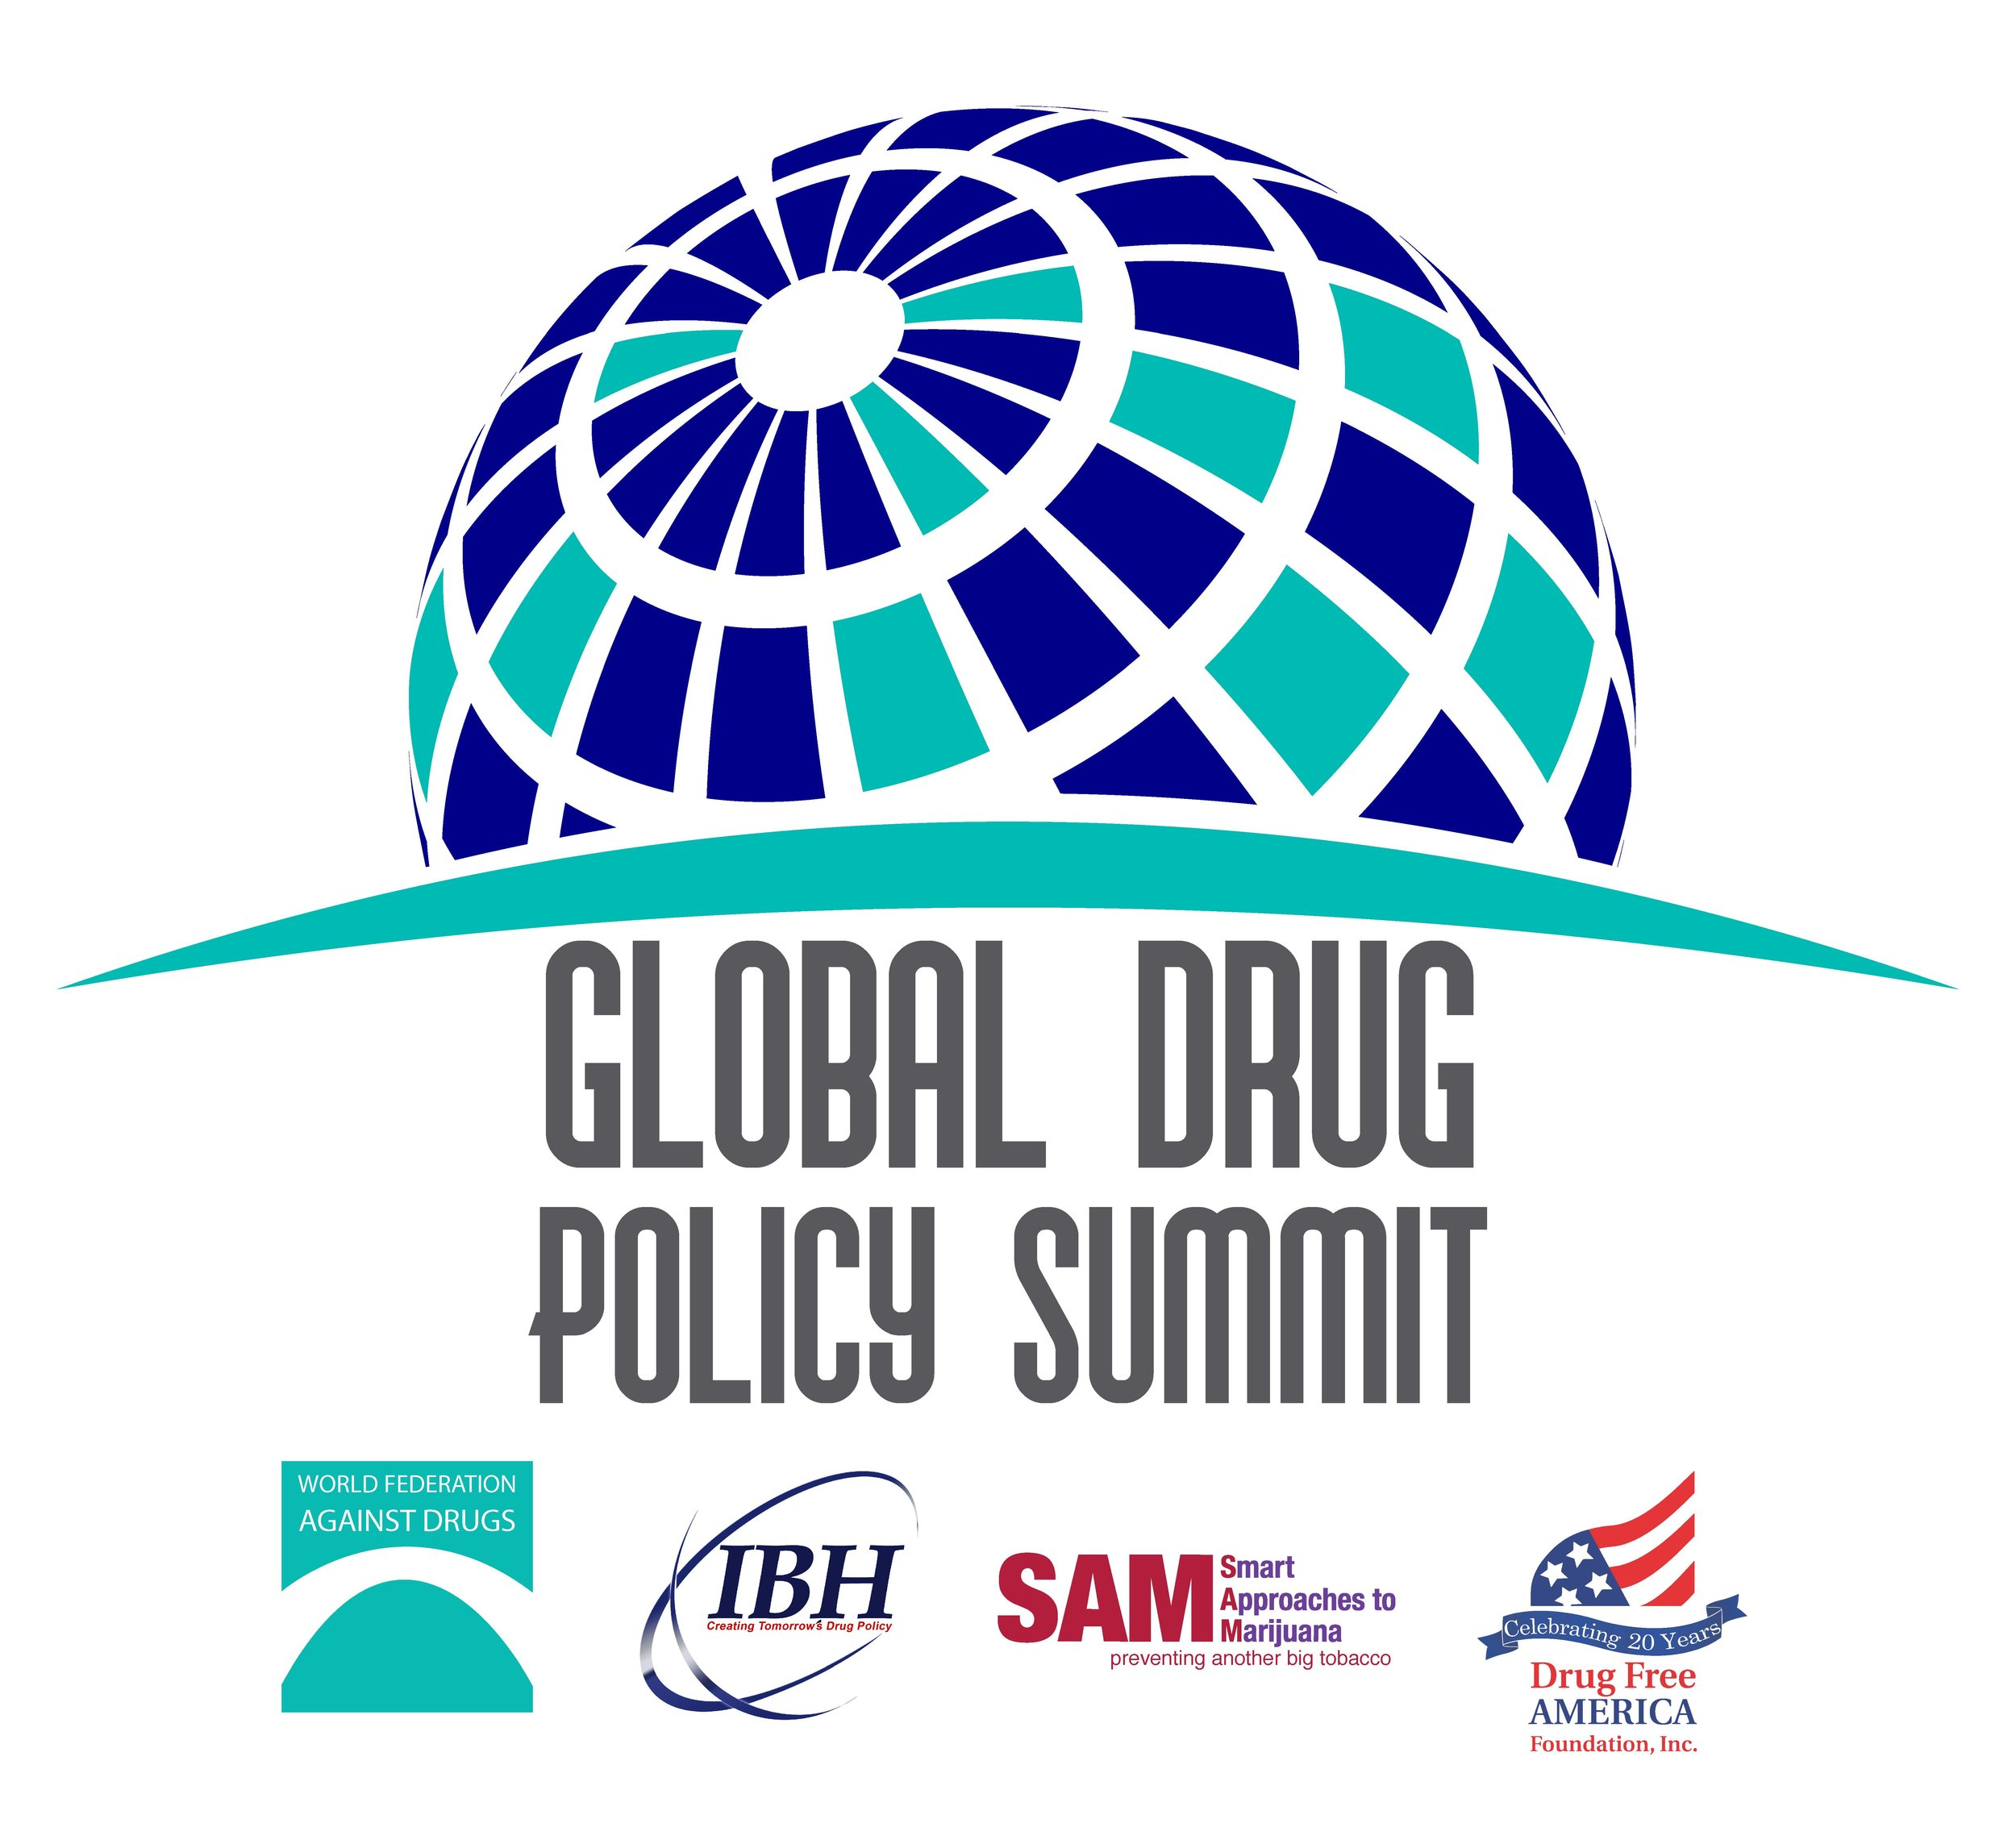 Global Drug Policy Summit Logo.jpg